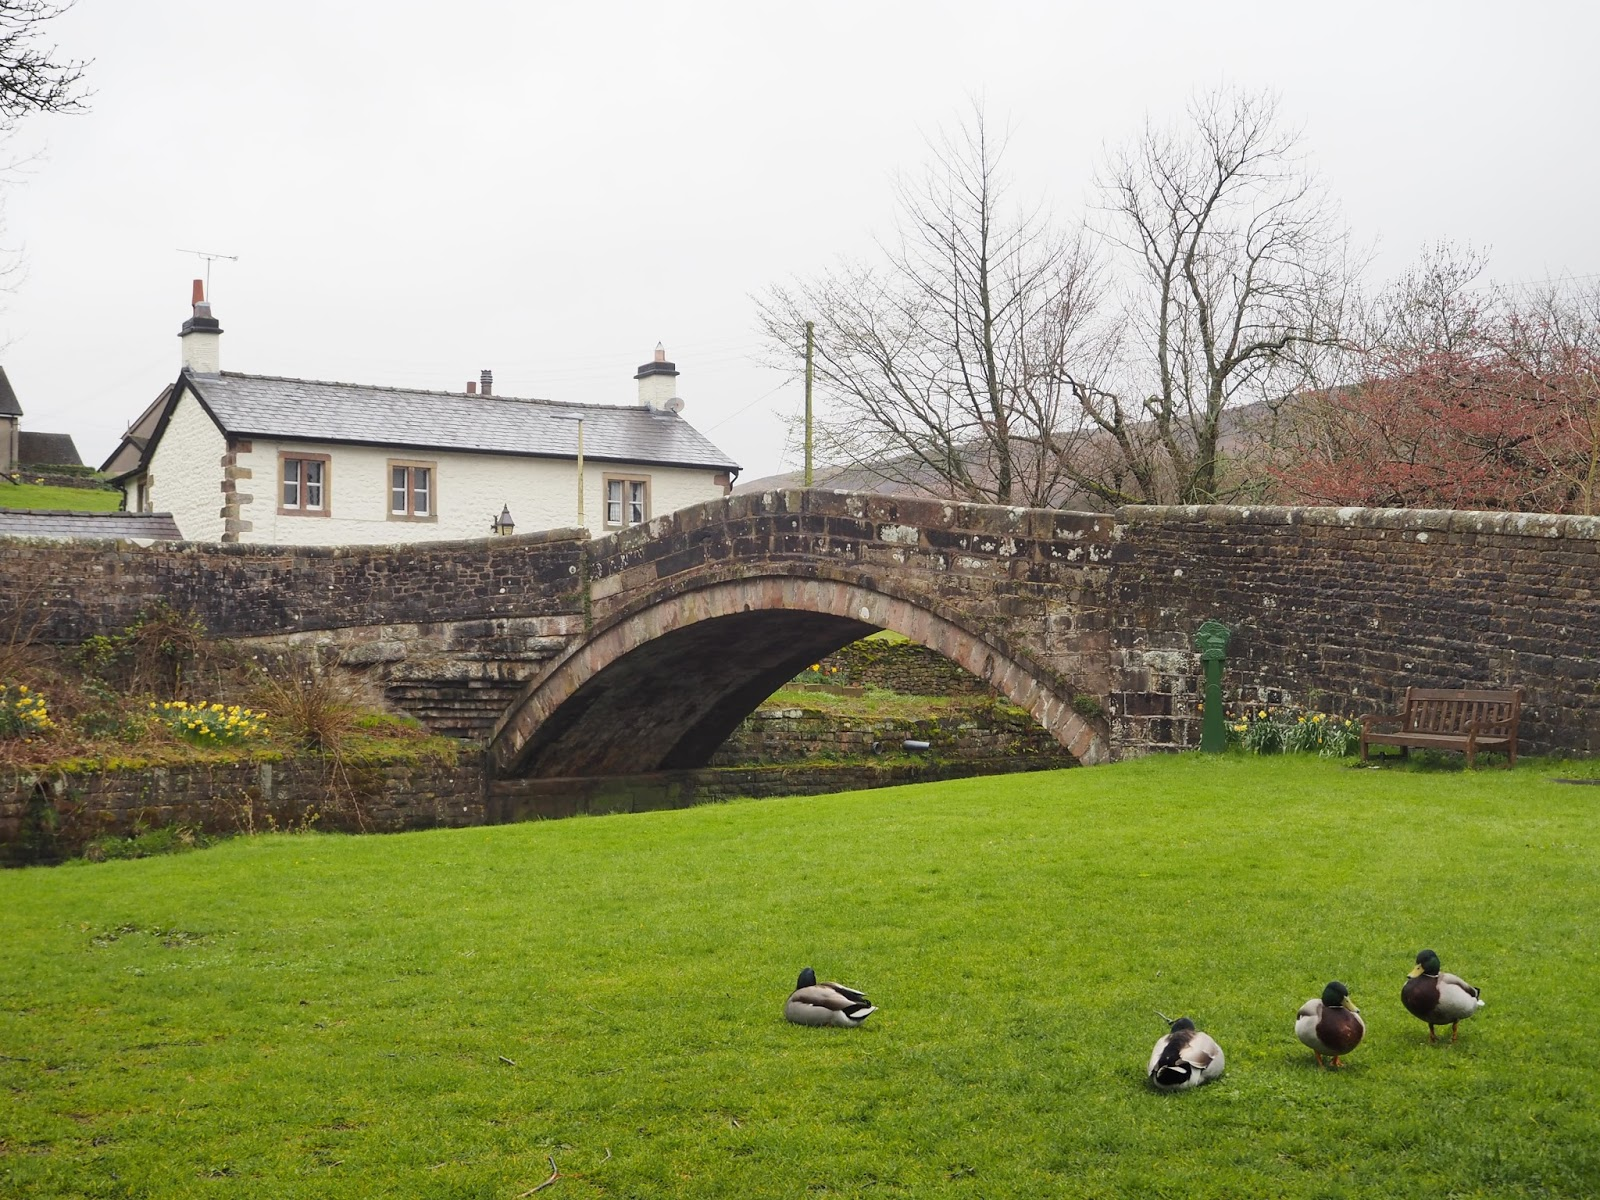 Ducks at Dunsop Bridge